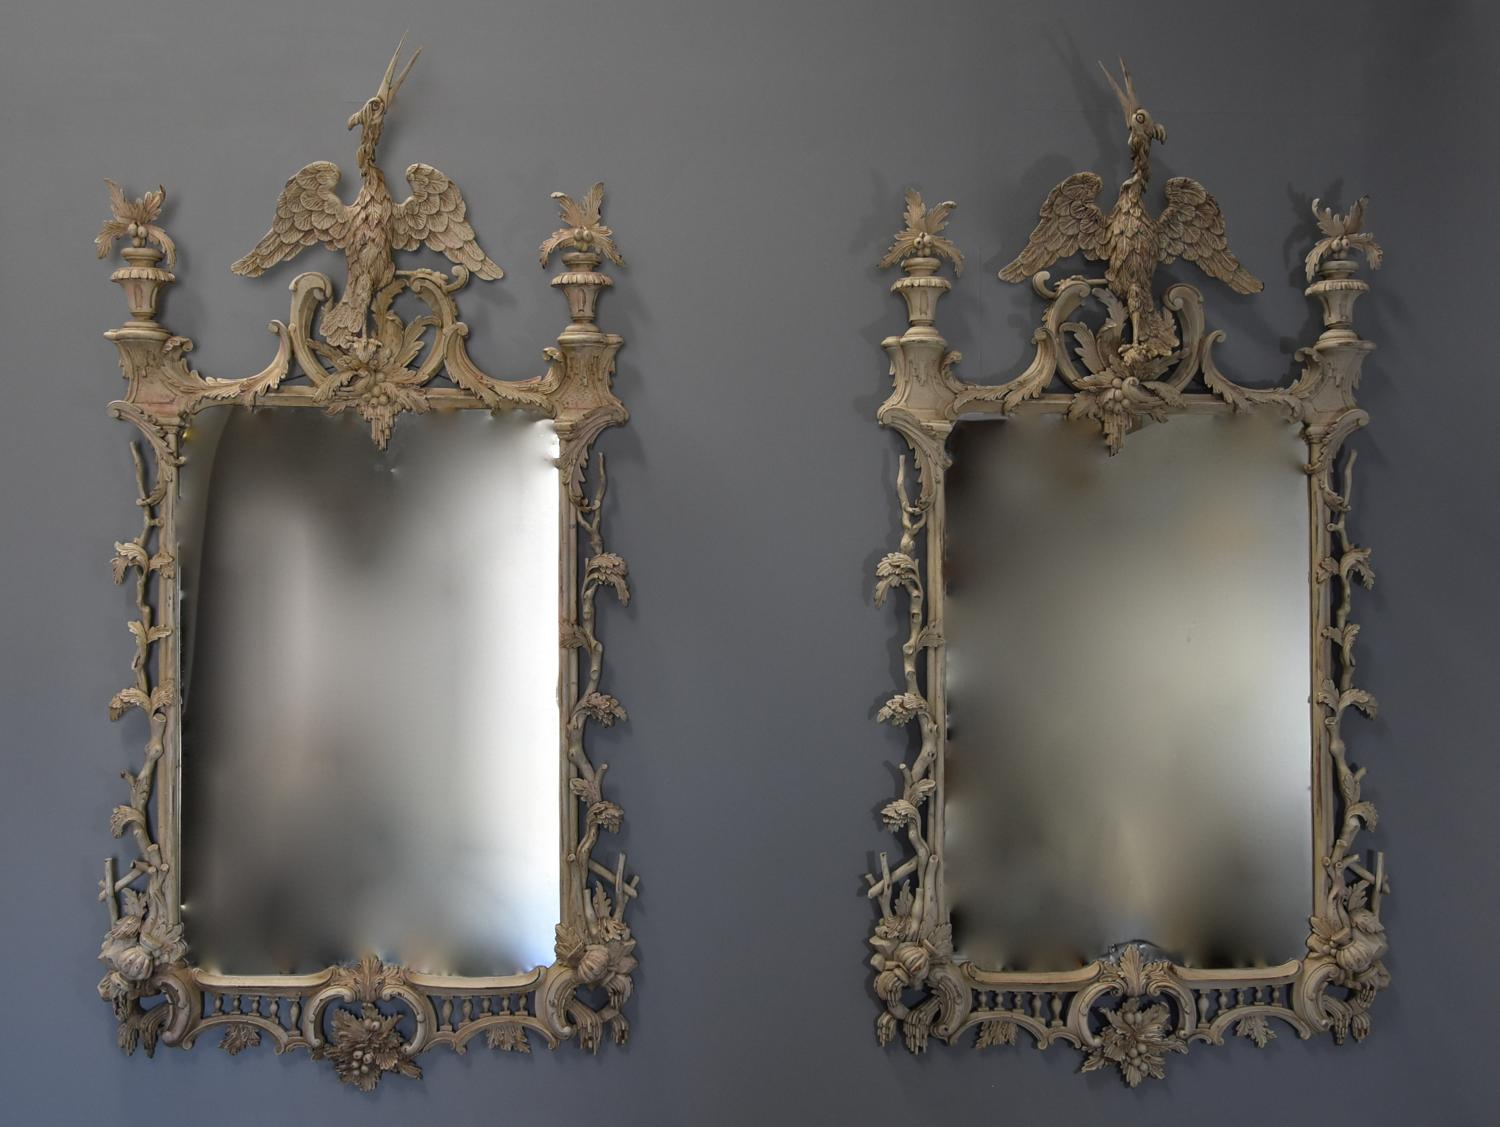 Pair of highly decorative Chippendale style carved wooden pier mirrors